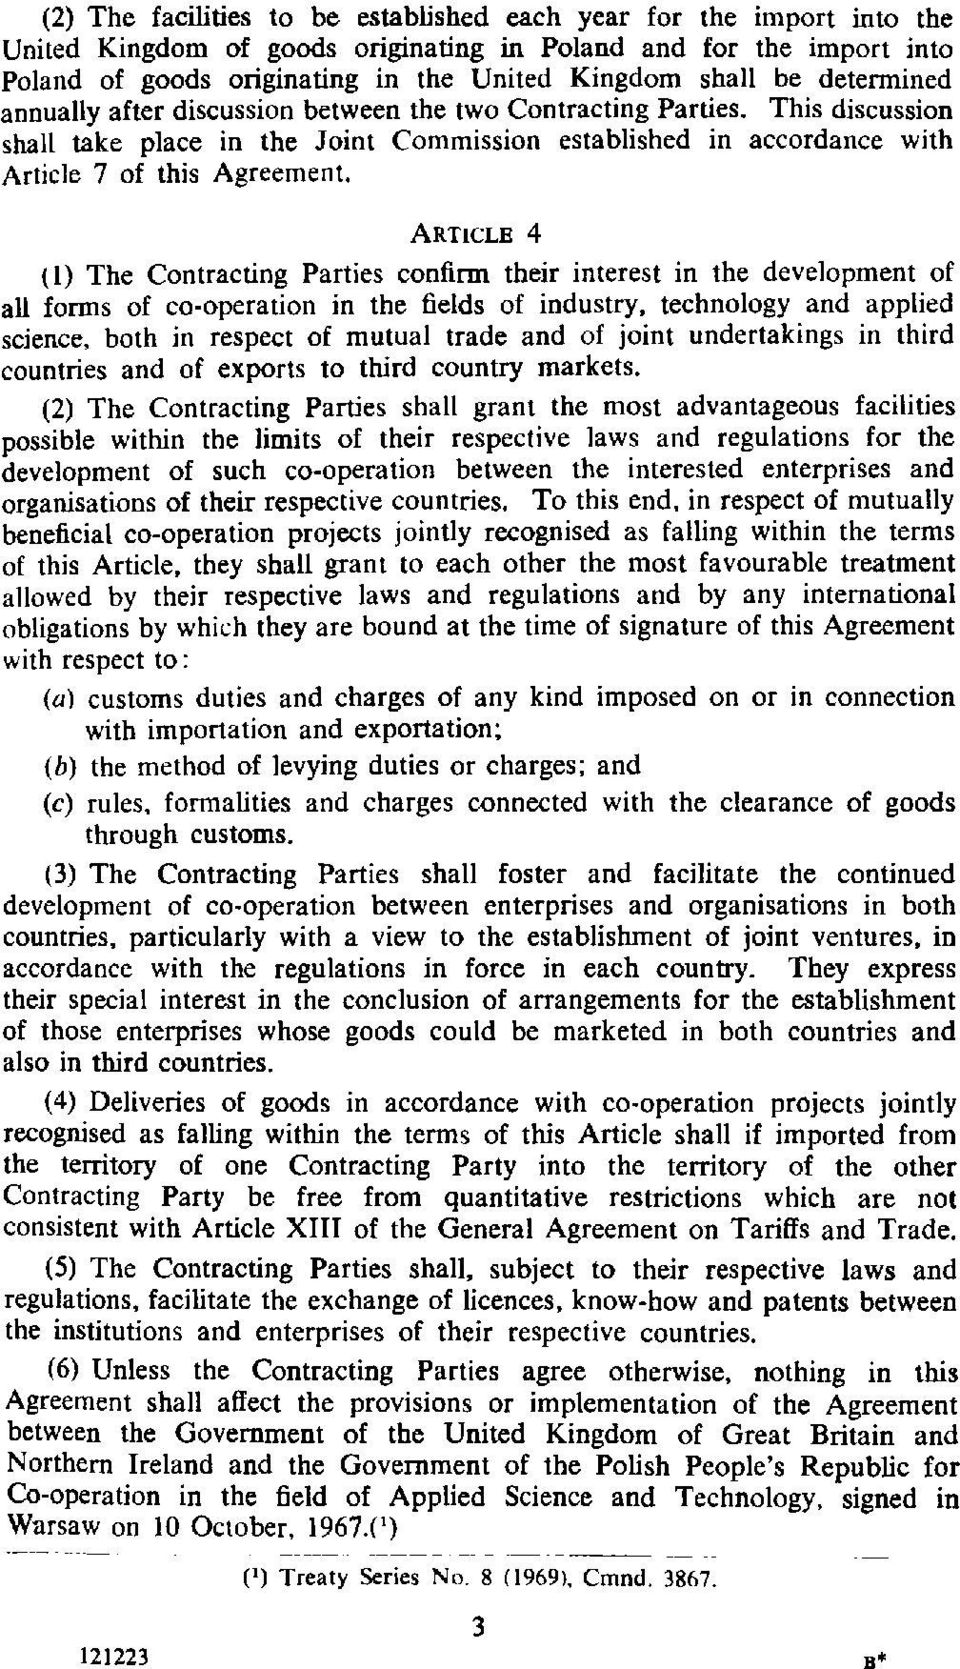 ARTICLE 4 (I) The Contracting Parties confirm their interest in the development of all forms of co-operation in the fields of industry, technology and applied science, both in respect of mutual trade